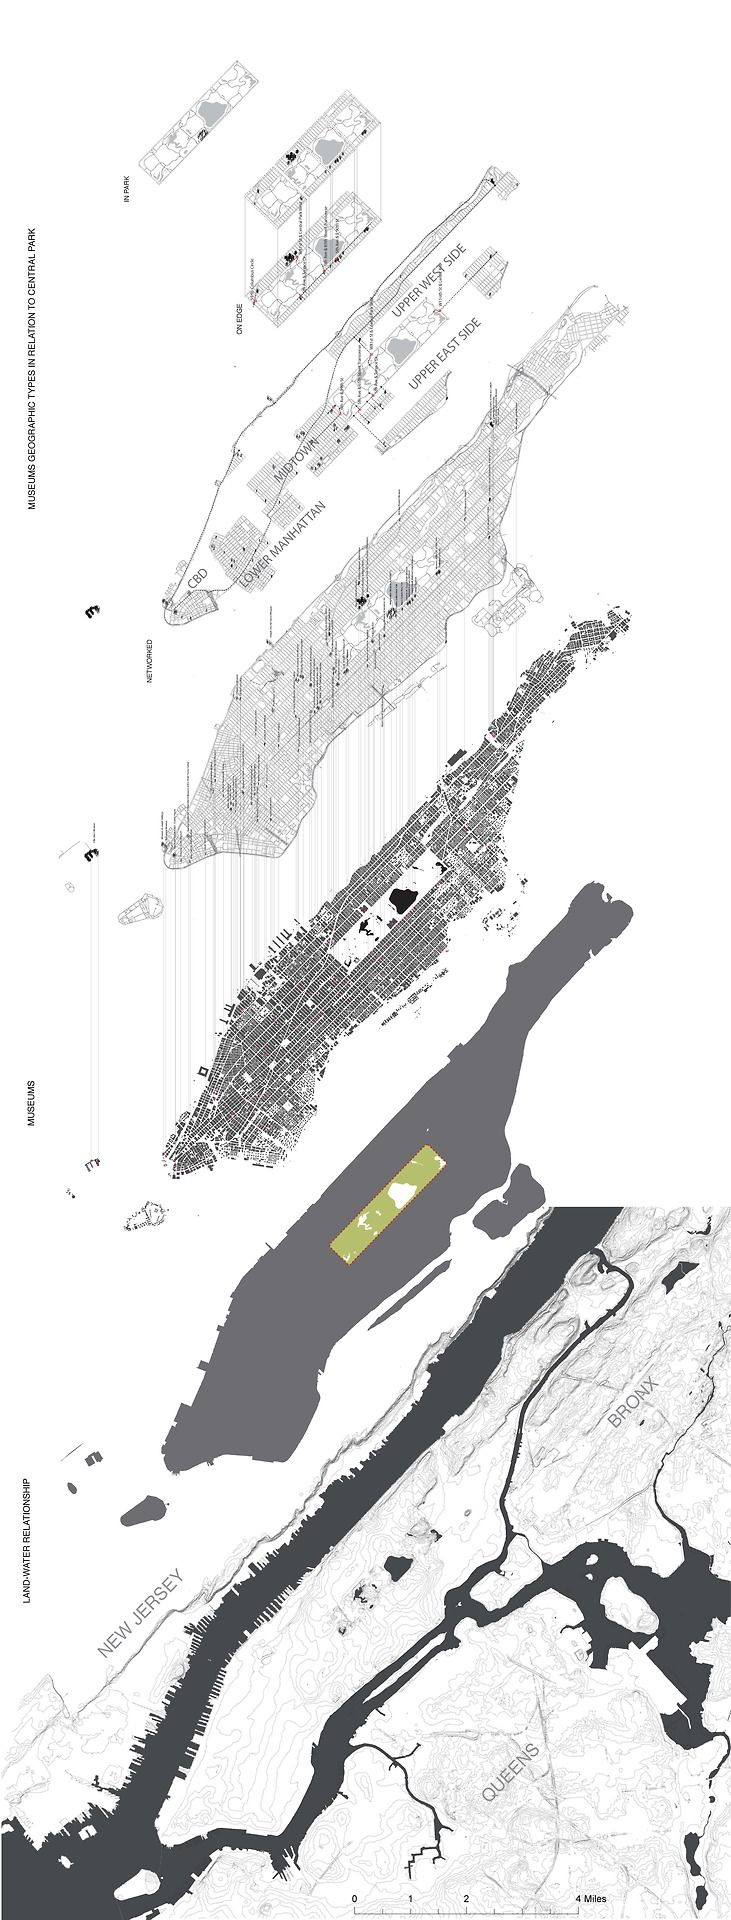 Mapping the Museum Mile of Manhattan in relation to Central Park